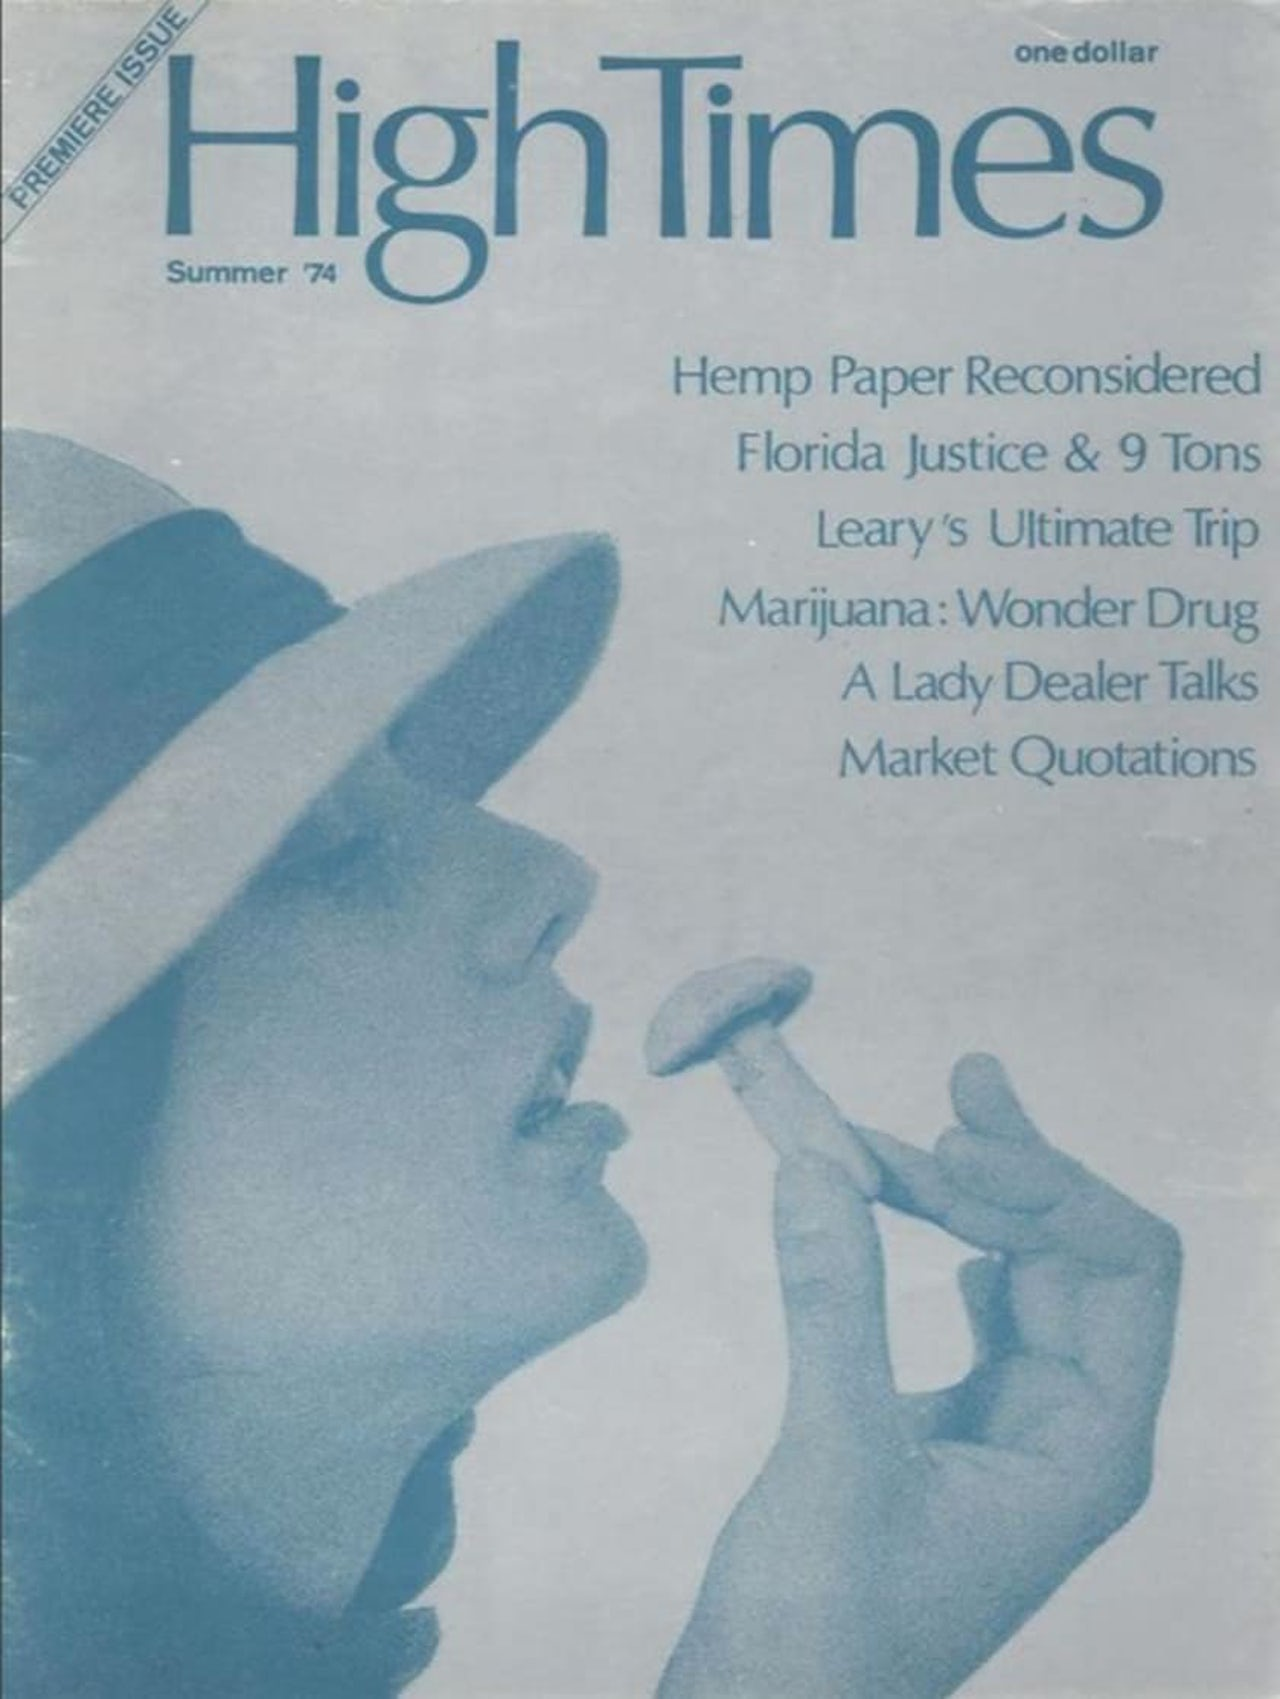 The first issue of High Times.